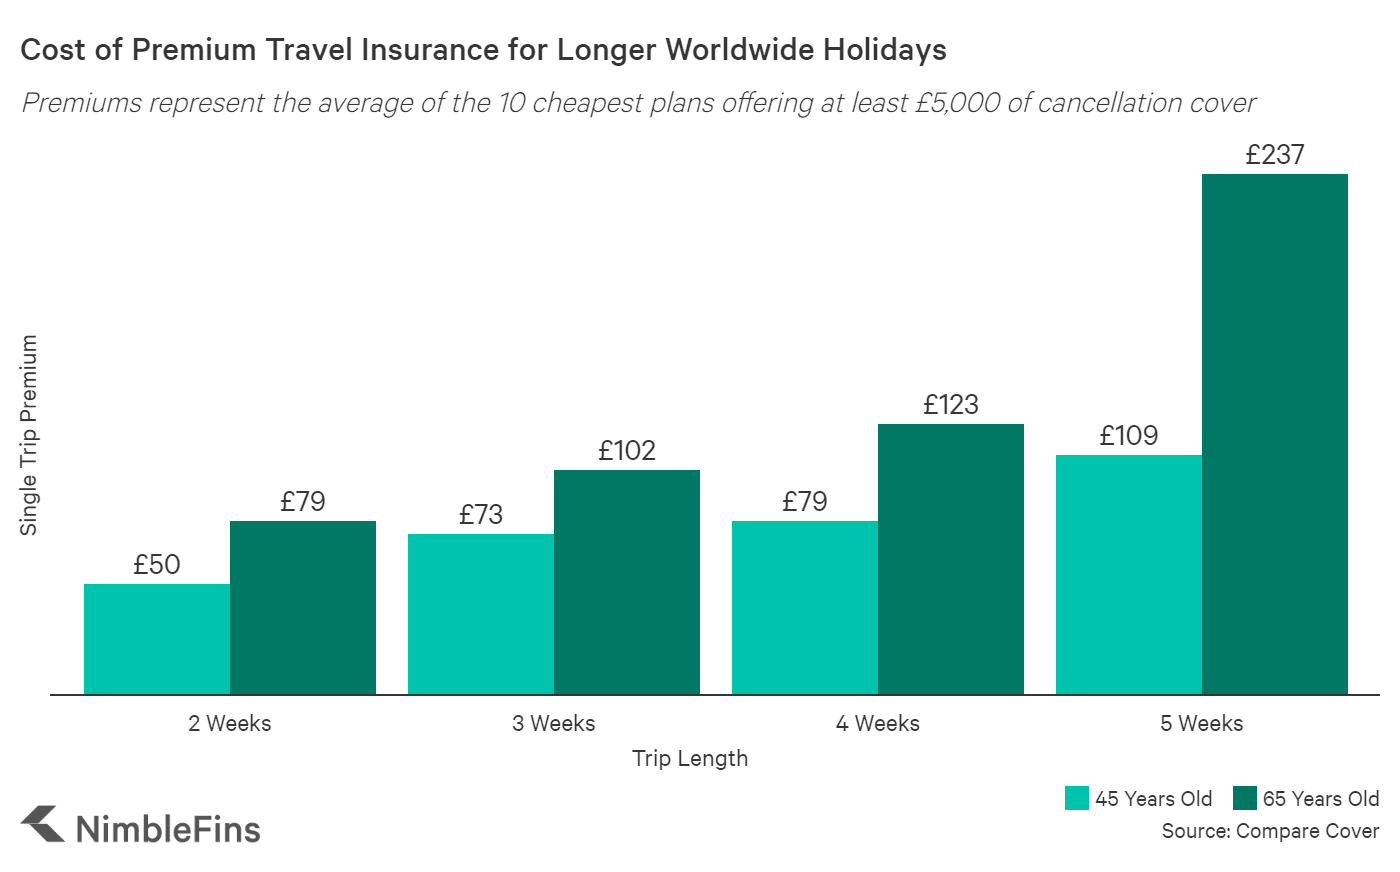 chart of cost of premium travel insurance for long trips